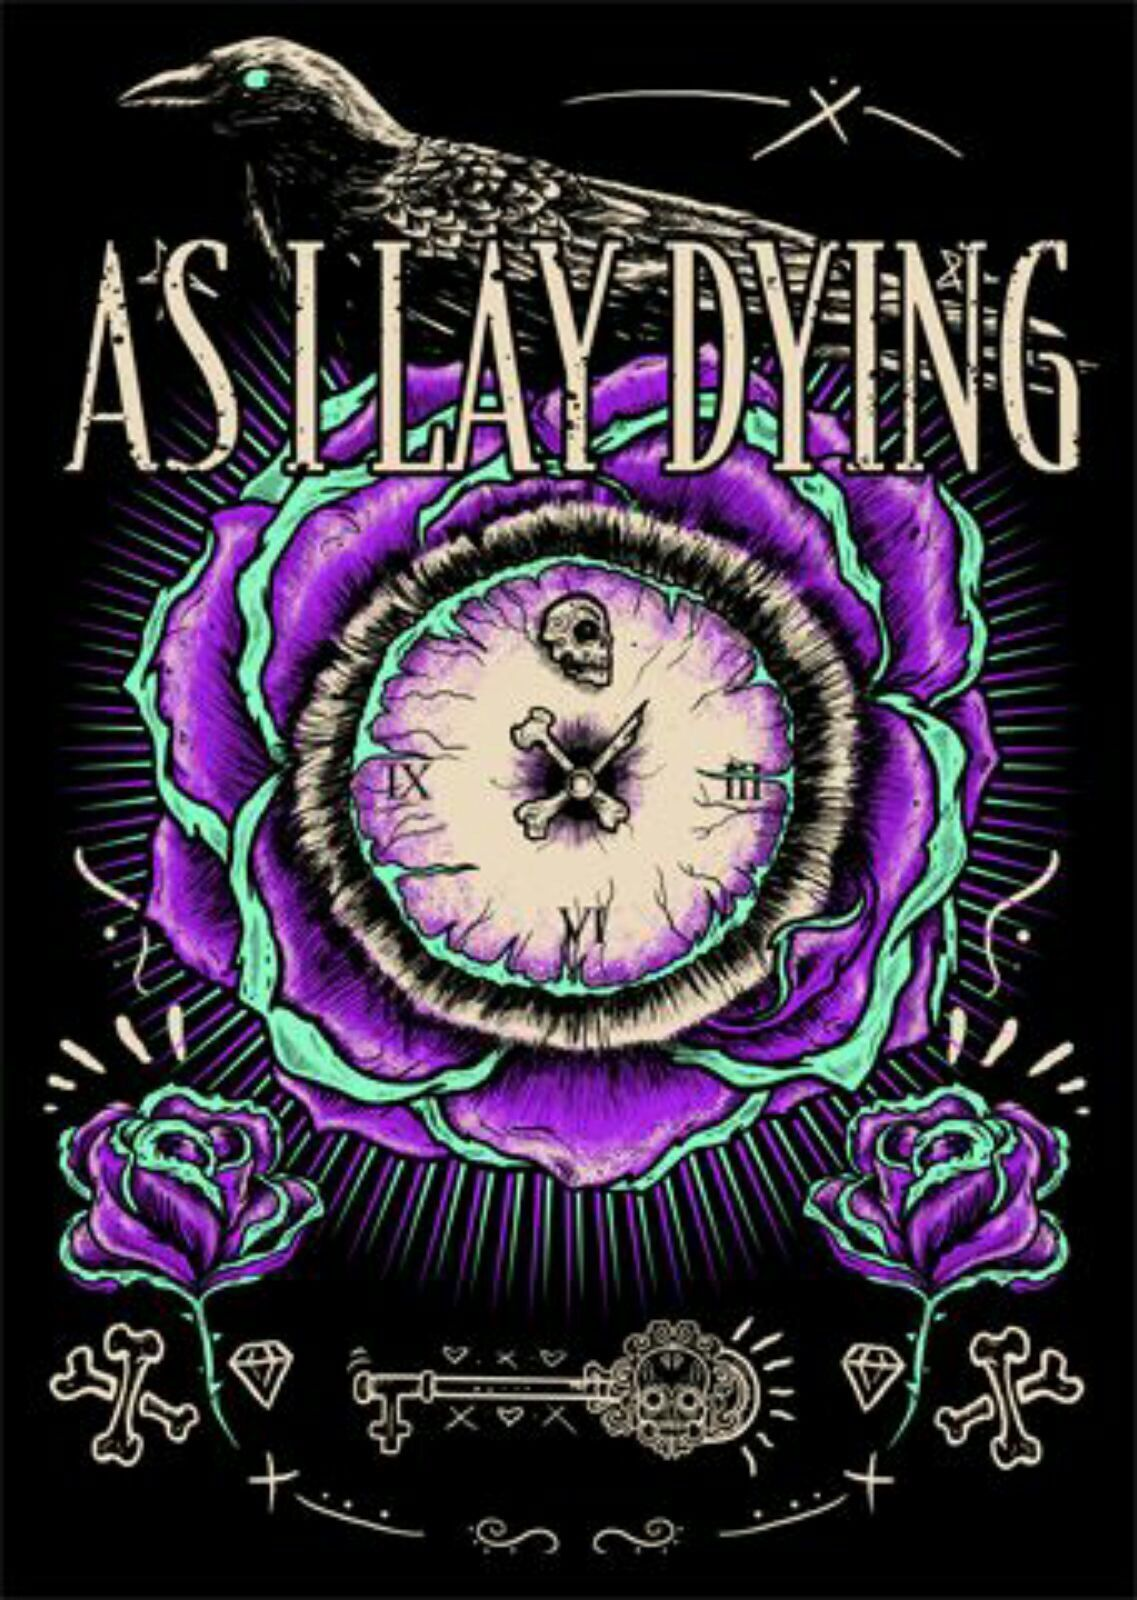 Pin By Laughing Carly On Music As I Lay Dying Metal Posters Art